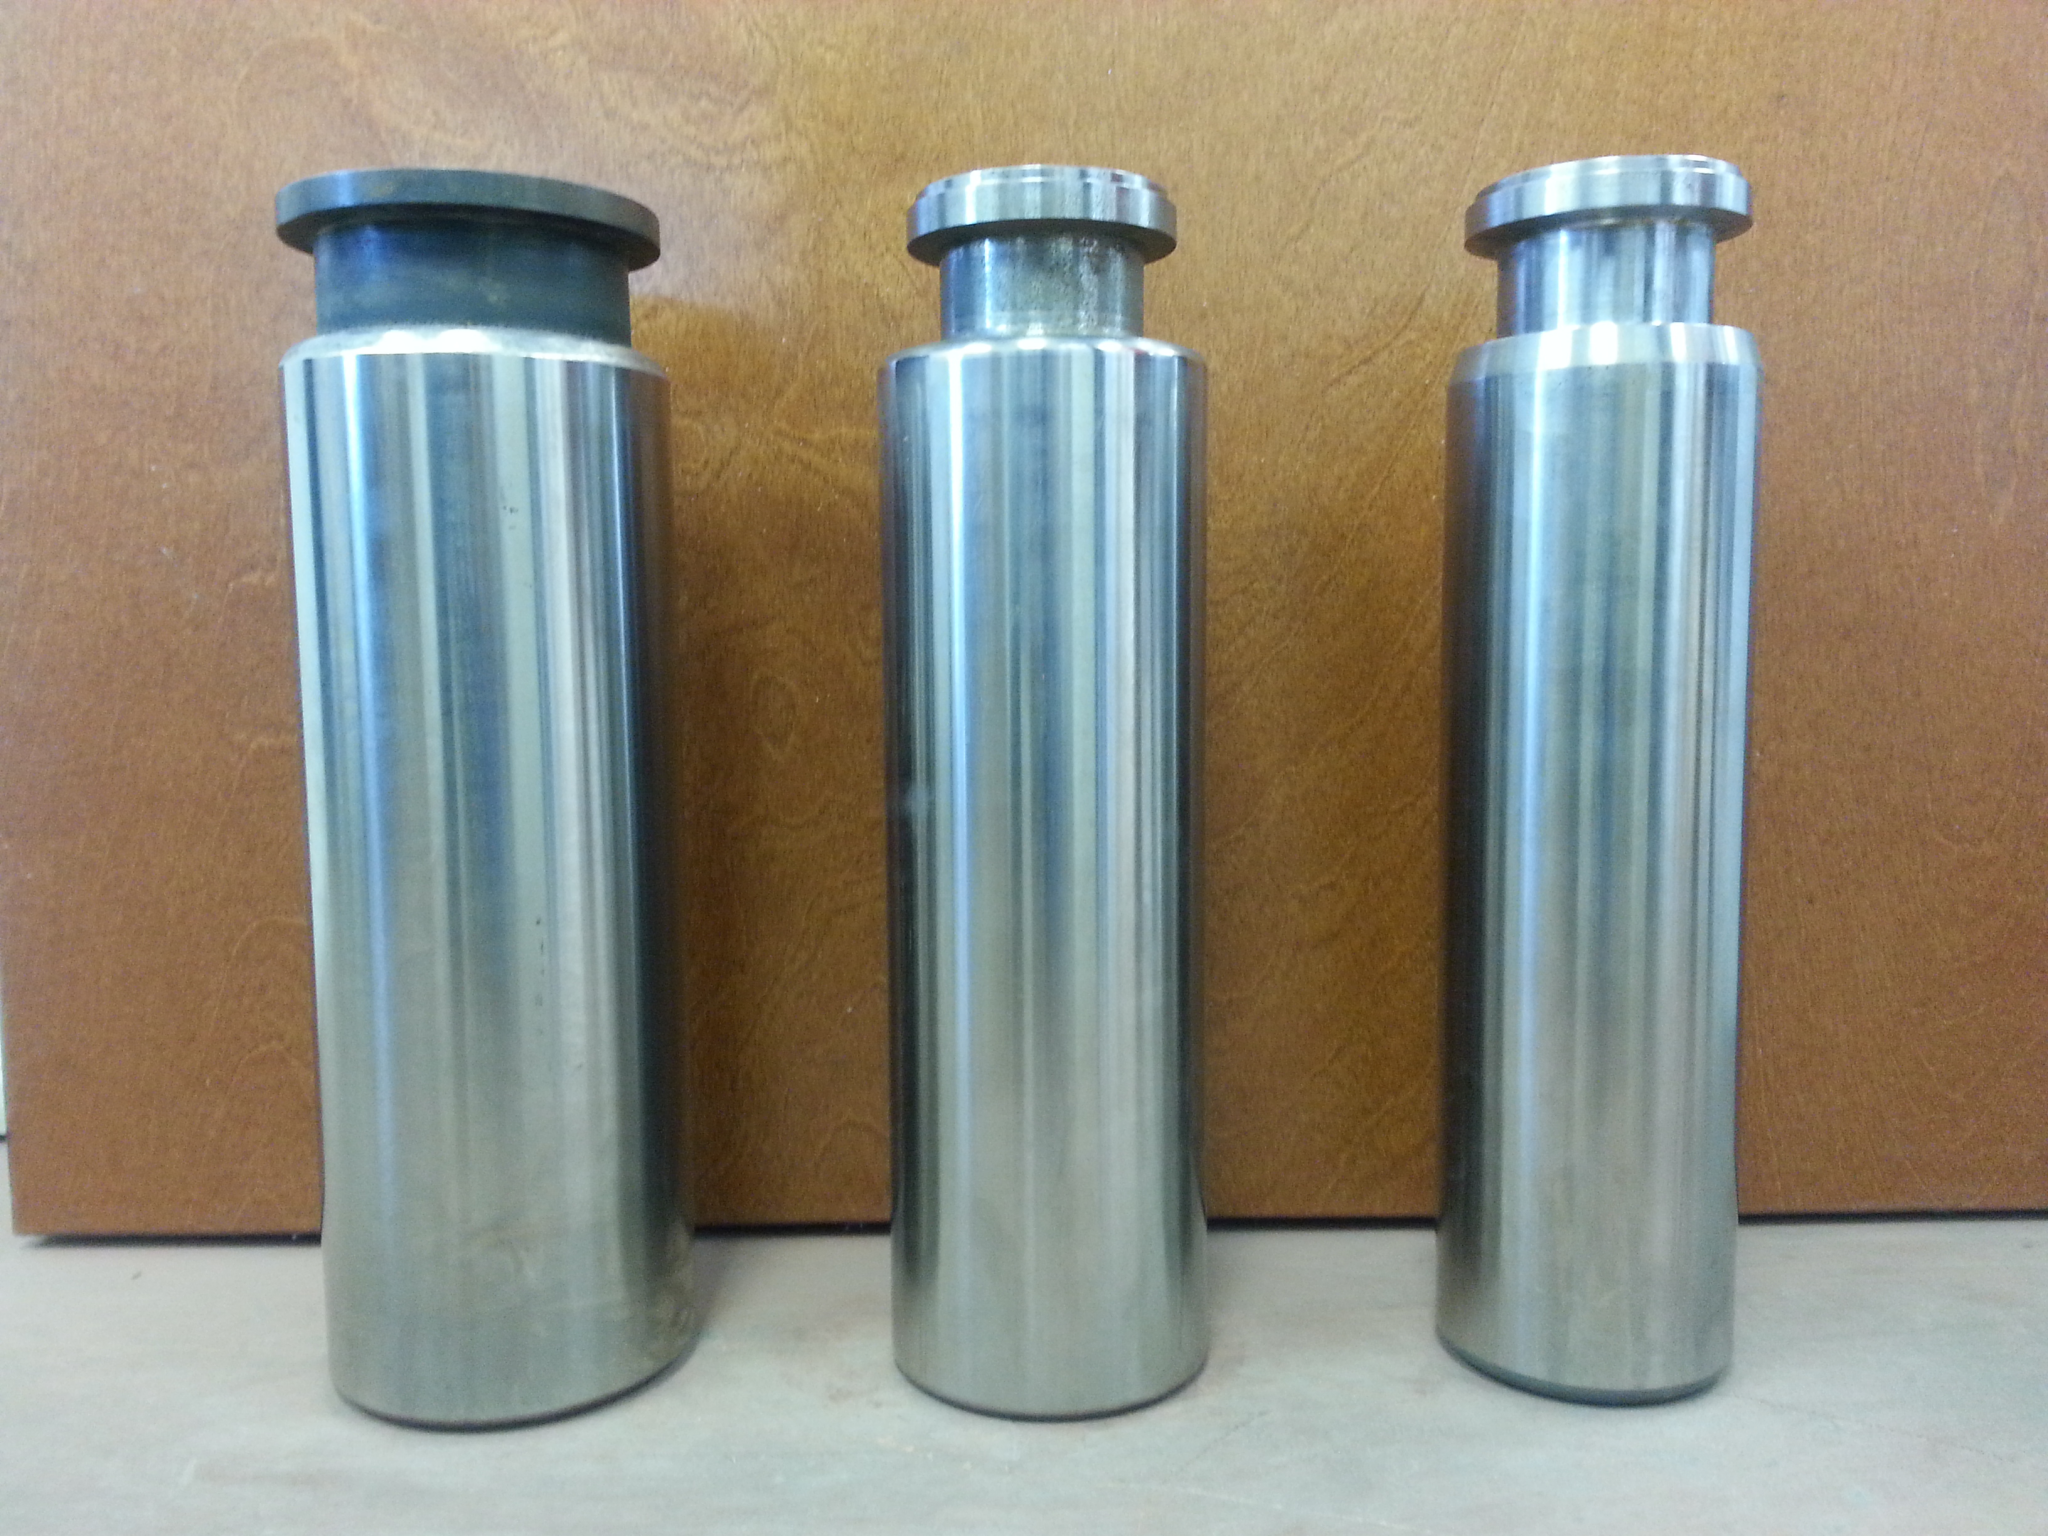 Silver cylinders